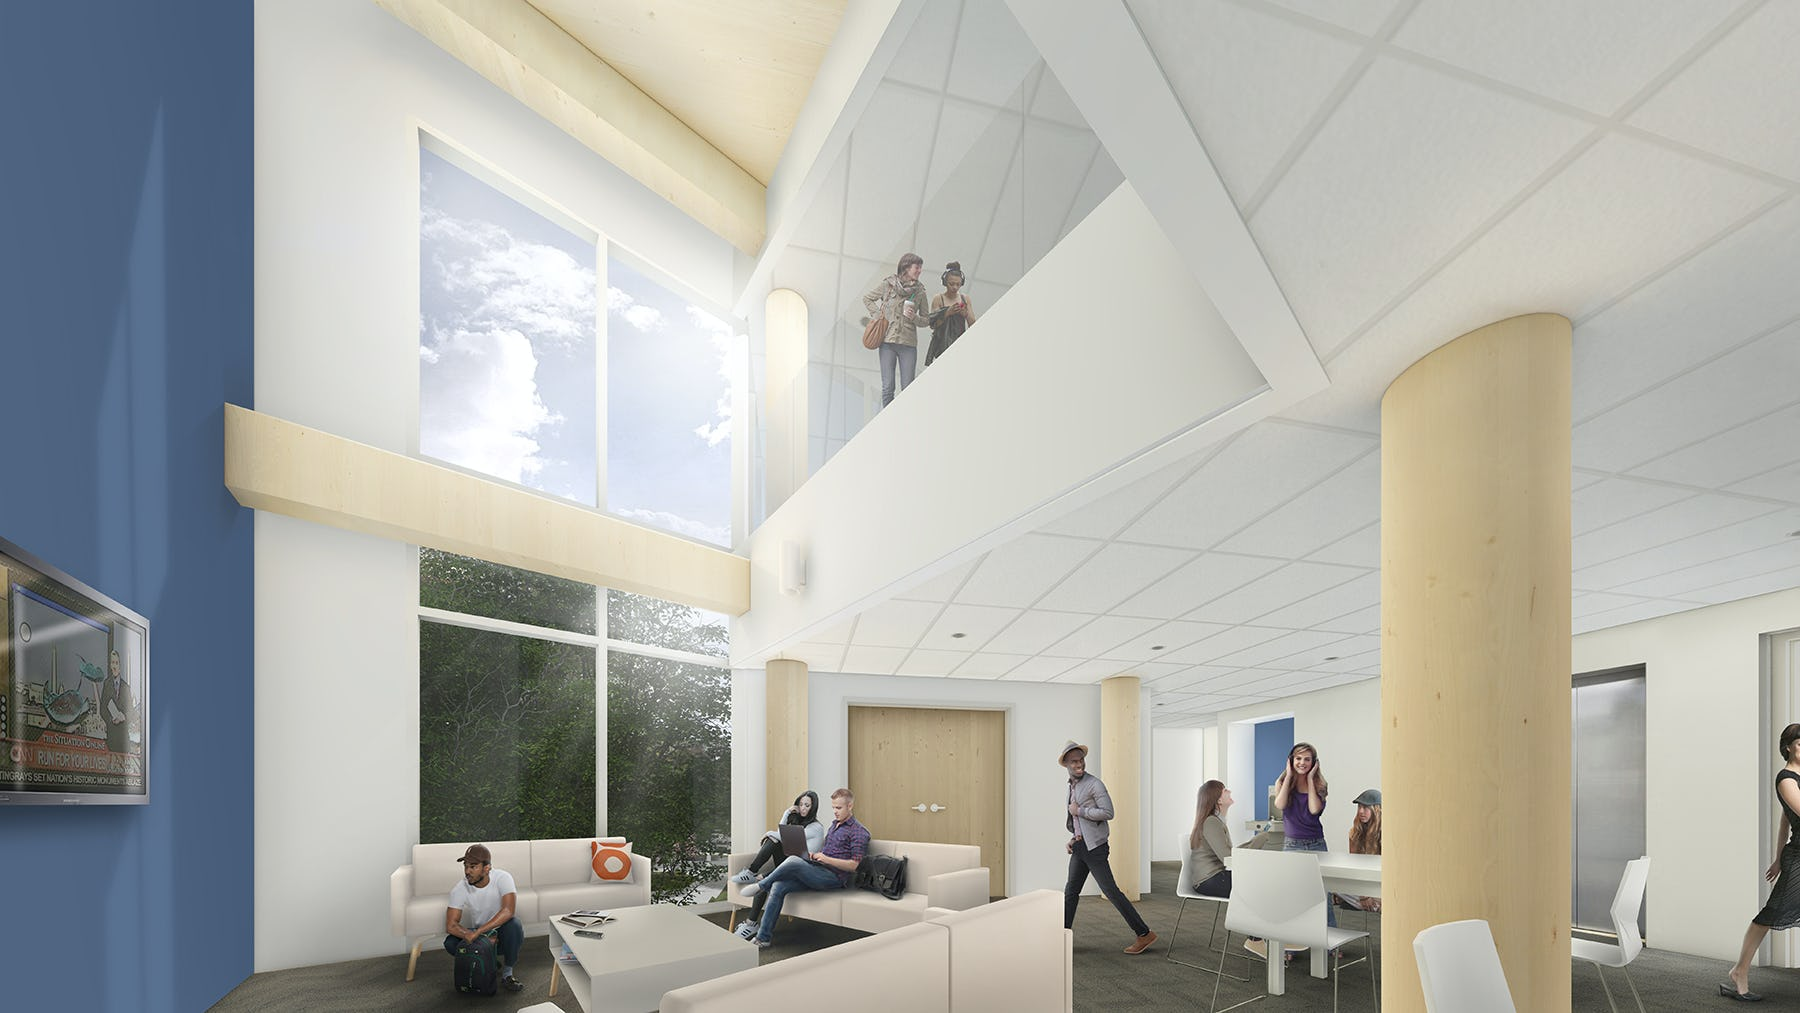 Uasdh rendering bldg a knuckle lounge low res